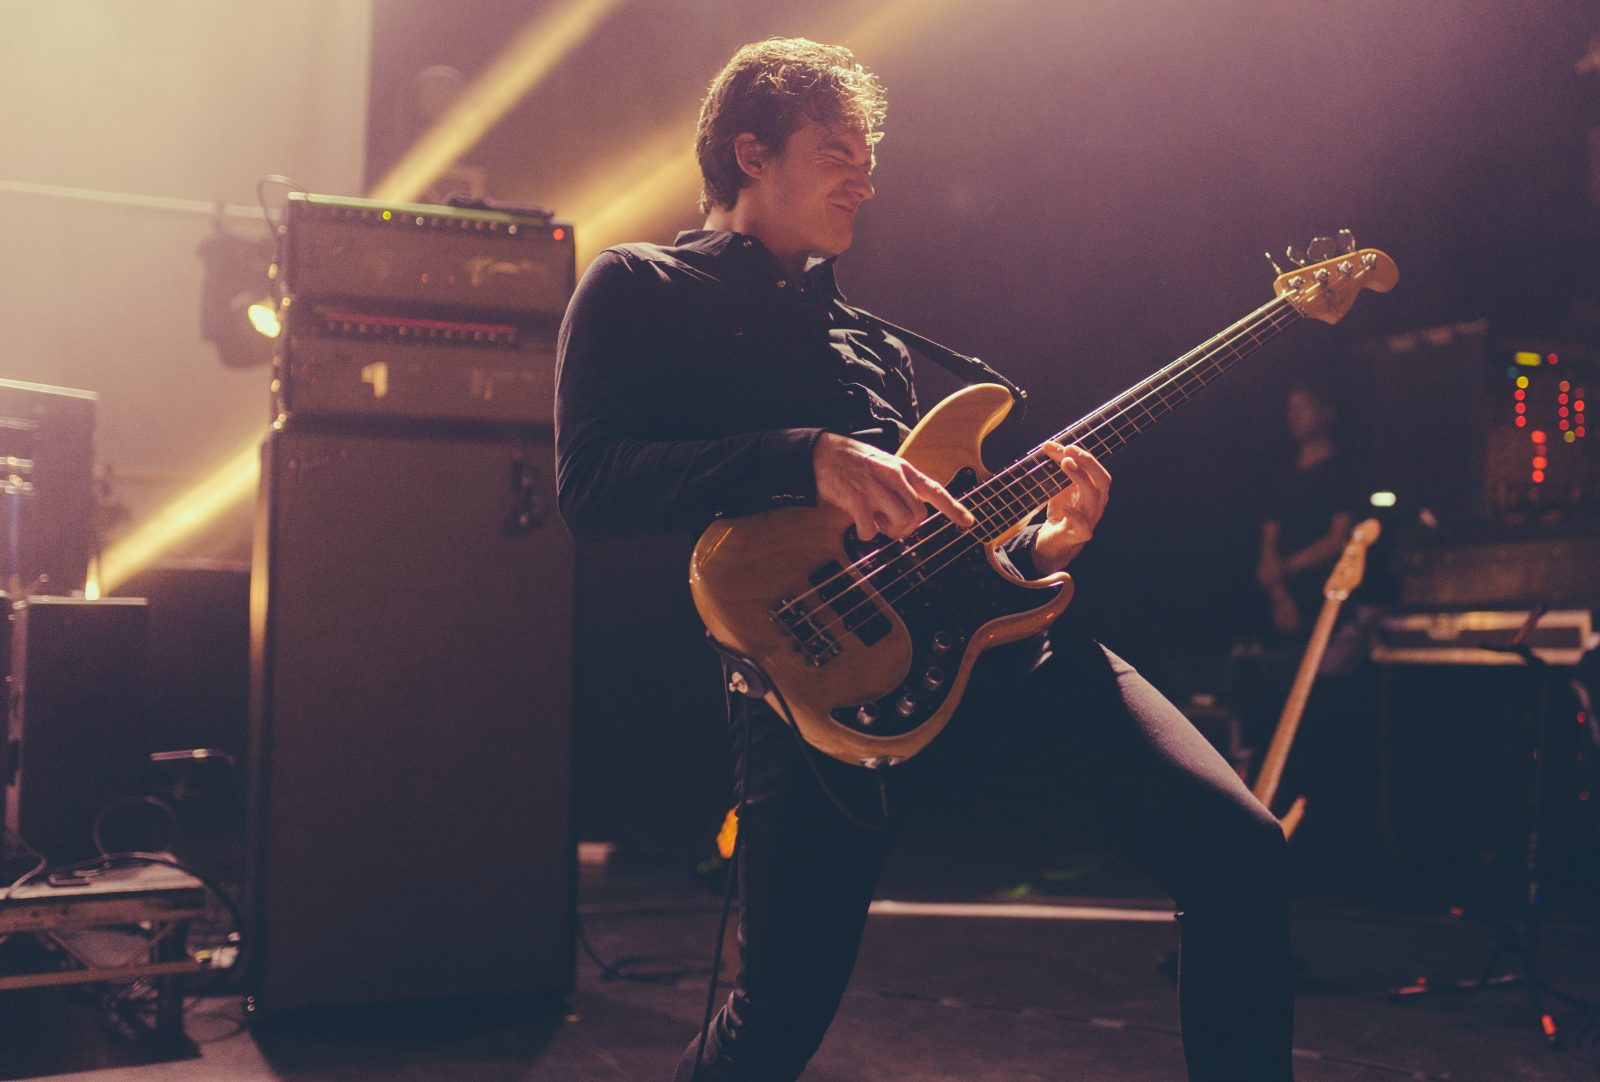 an evening with: Manchester Orchestra